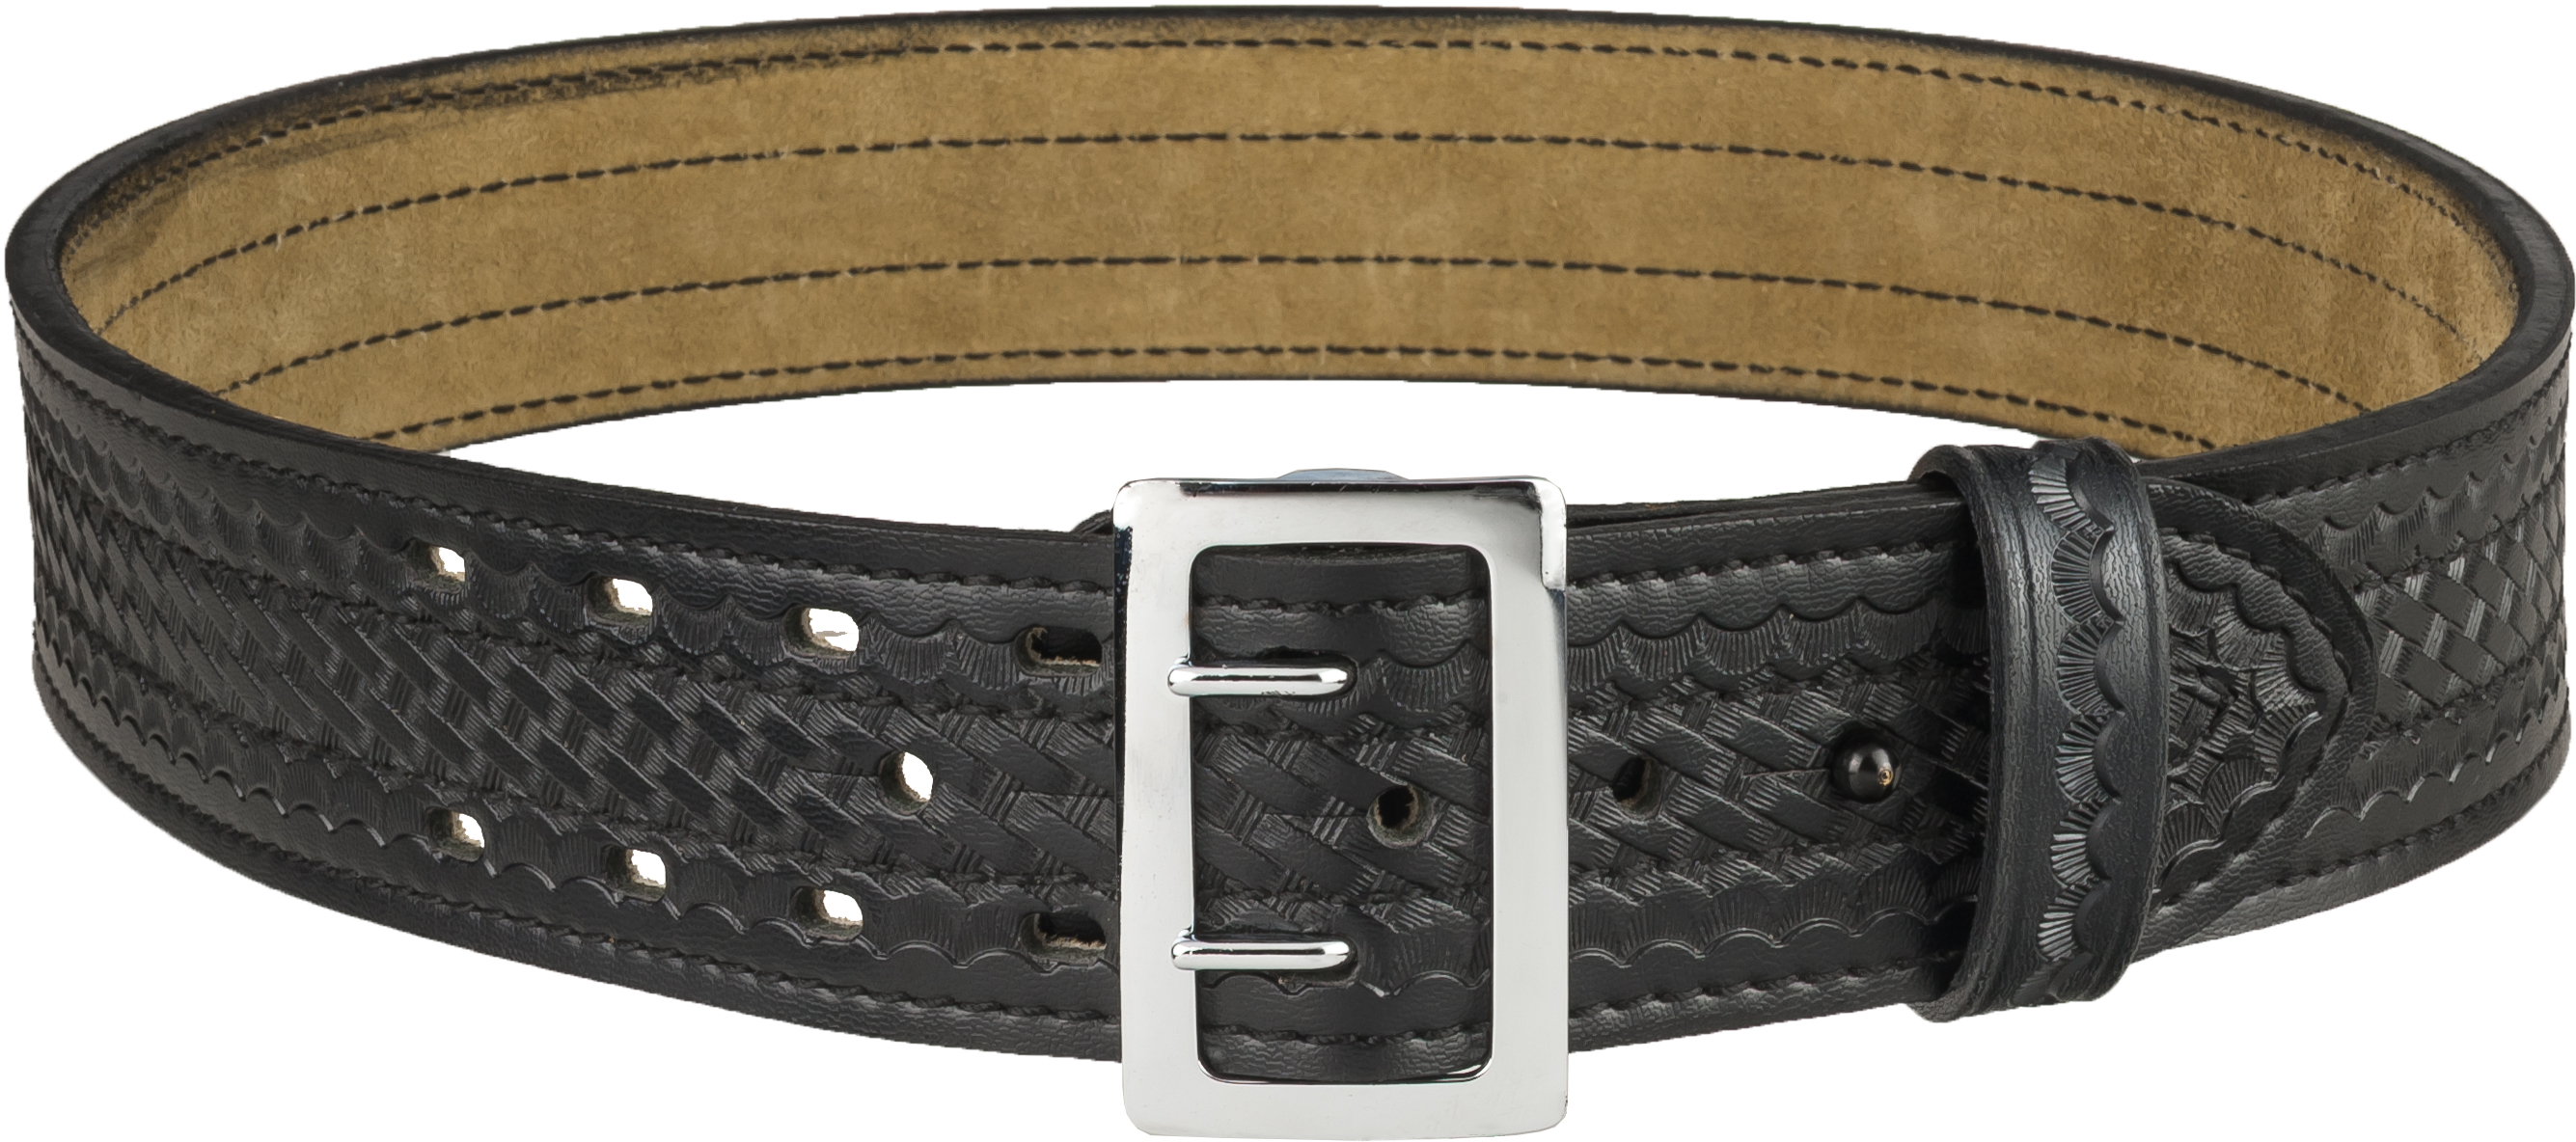 Size Safariland 87V Suede Lined Belt w// Hook and Loop System 87V-XX-26 40